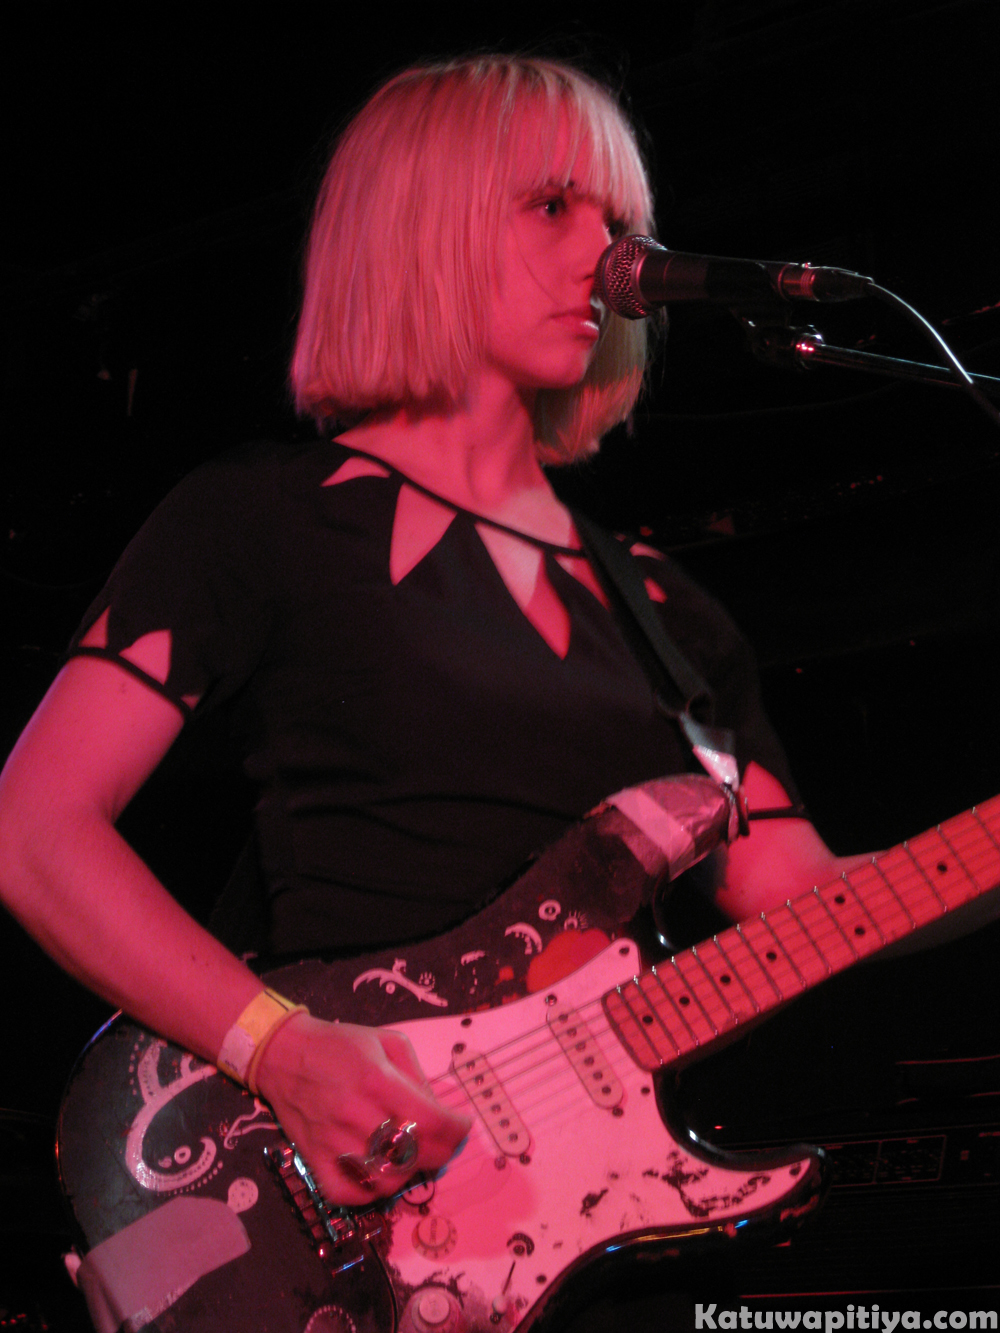 Ritzy of The Joy Formidable